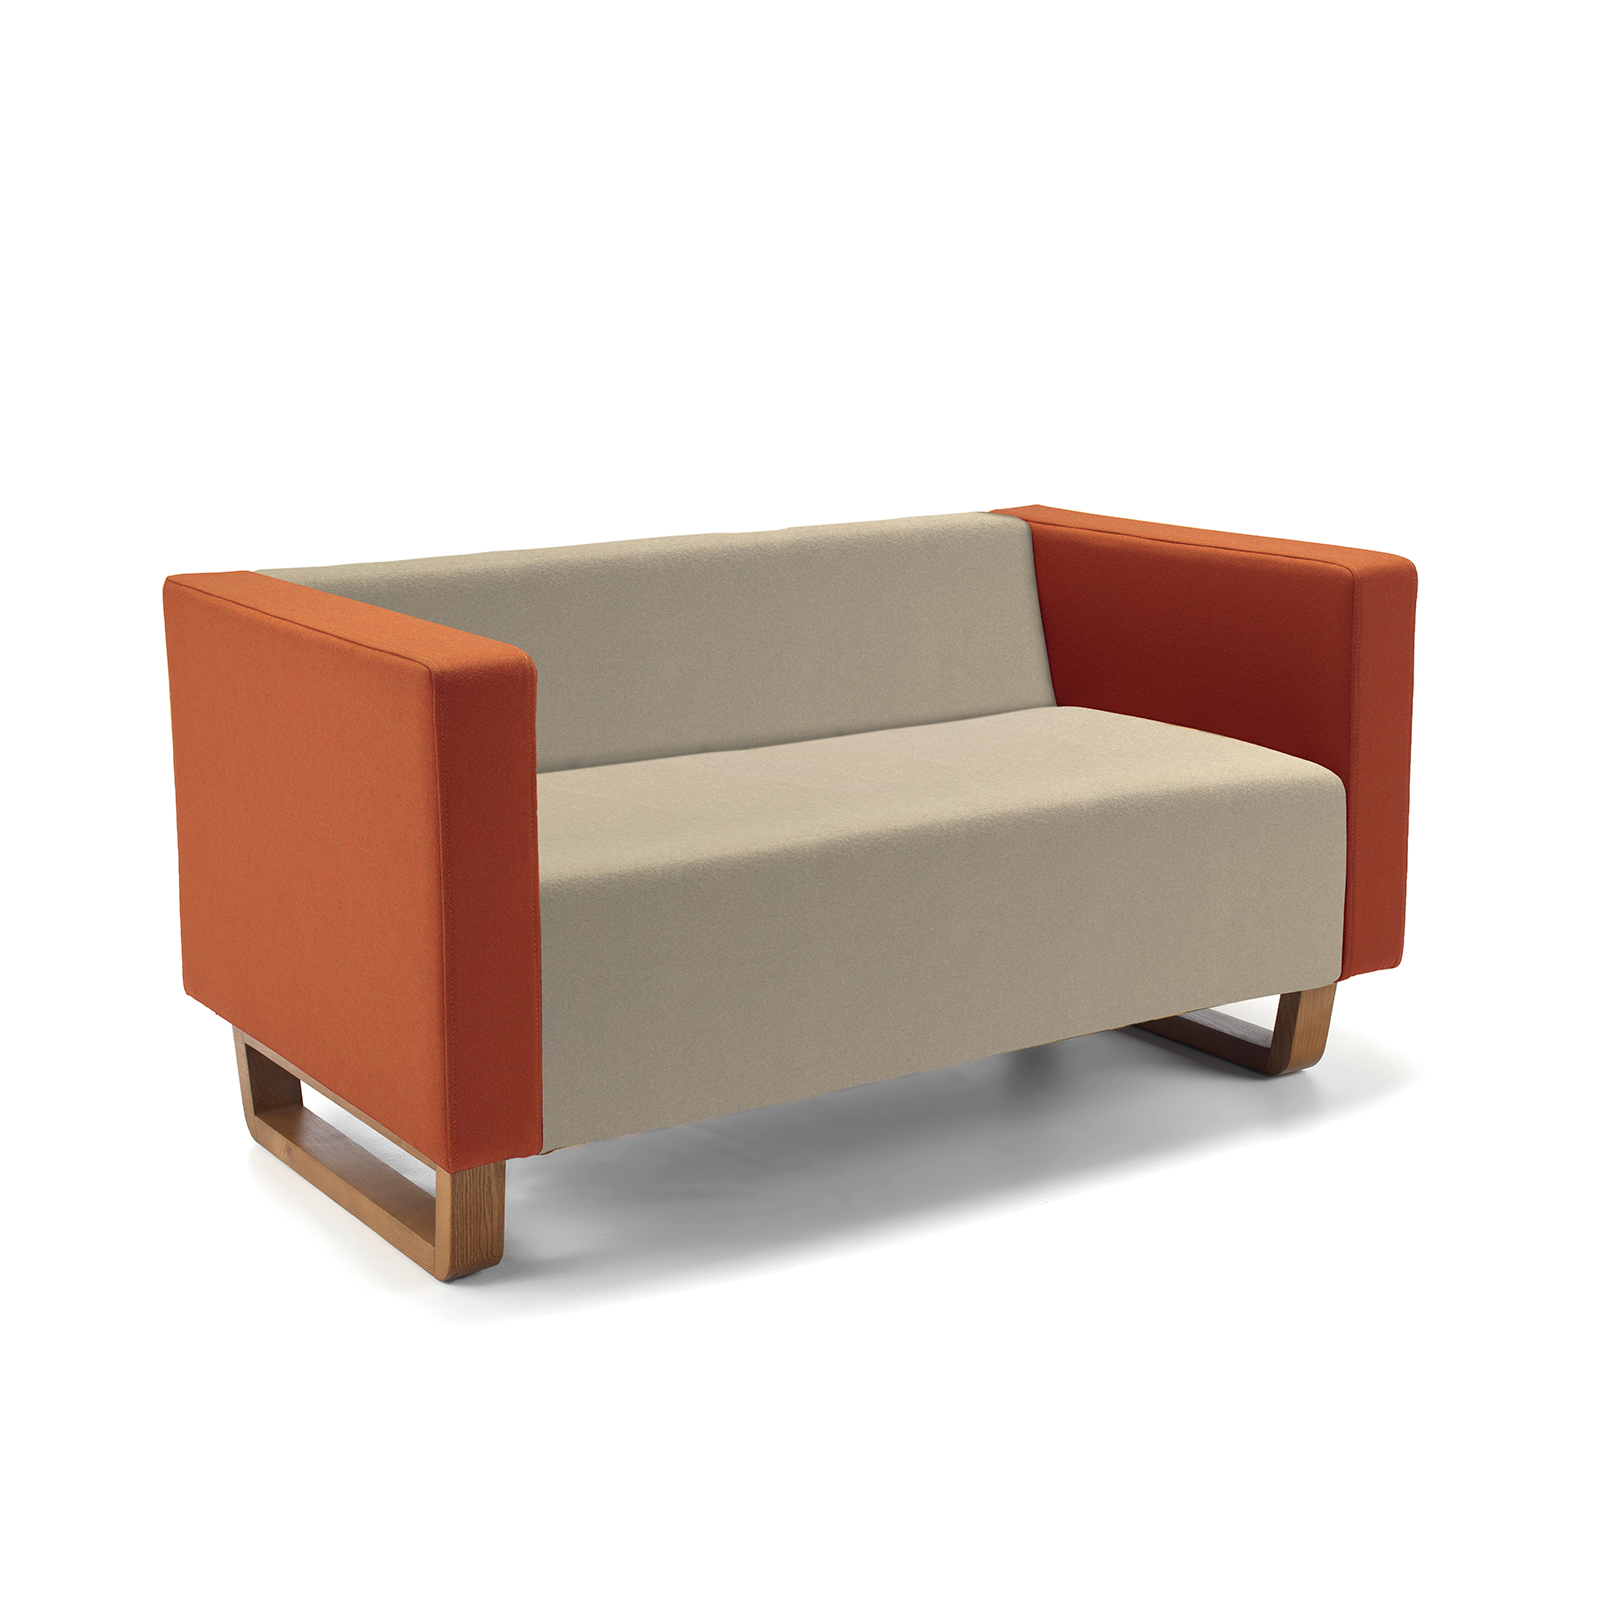 Cleo Chairs & Sofas (1-3 Seaters)